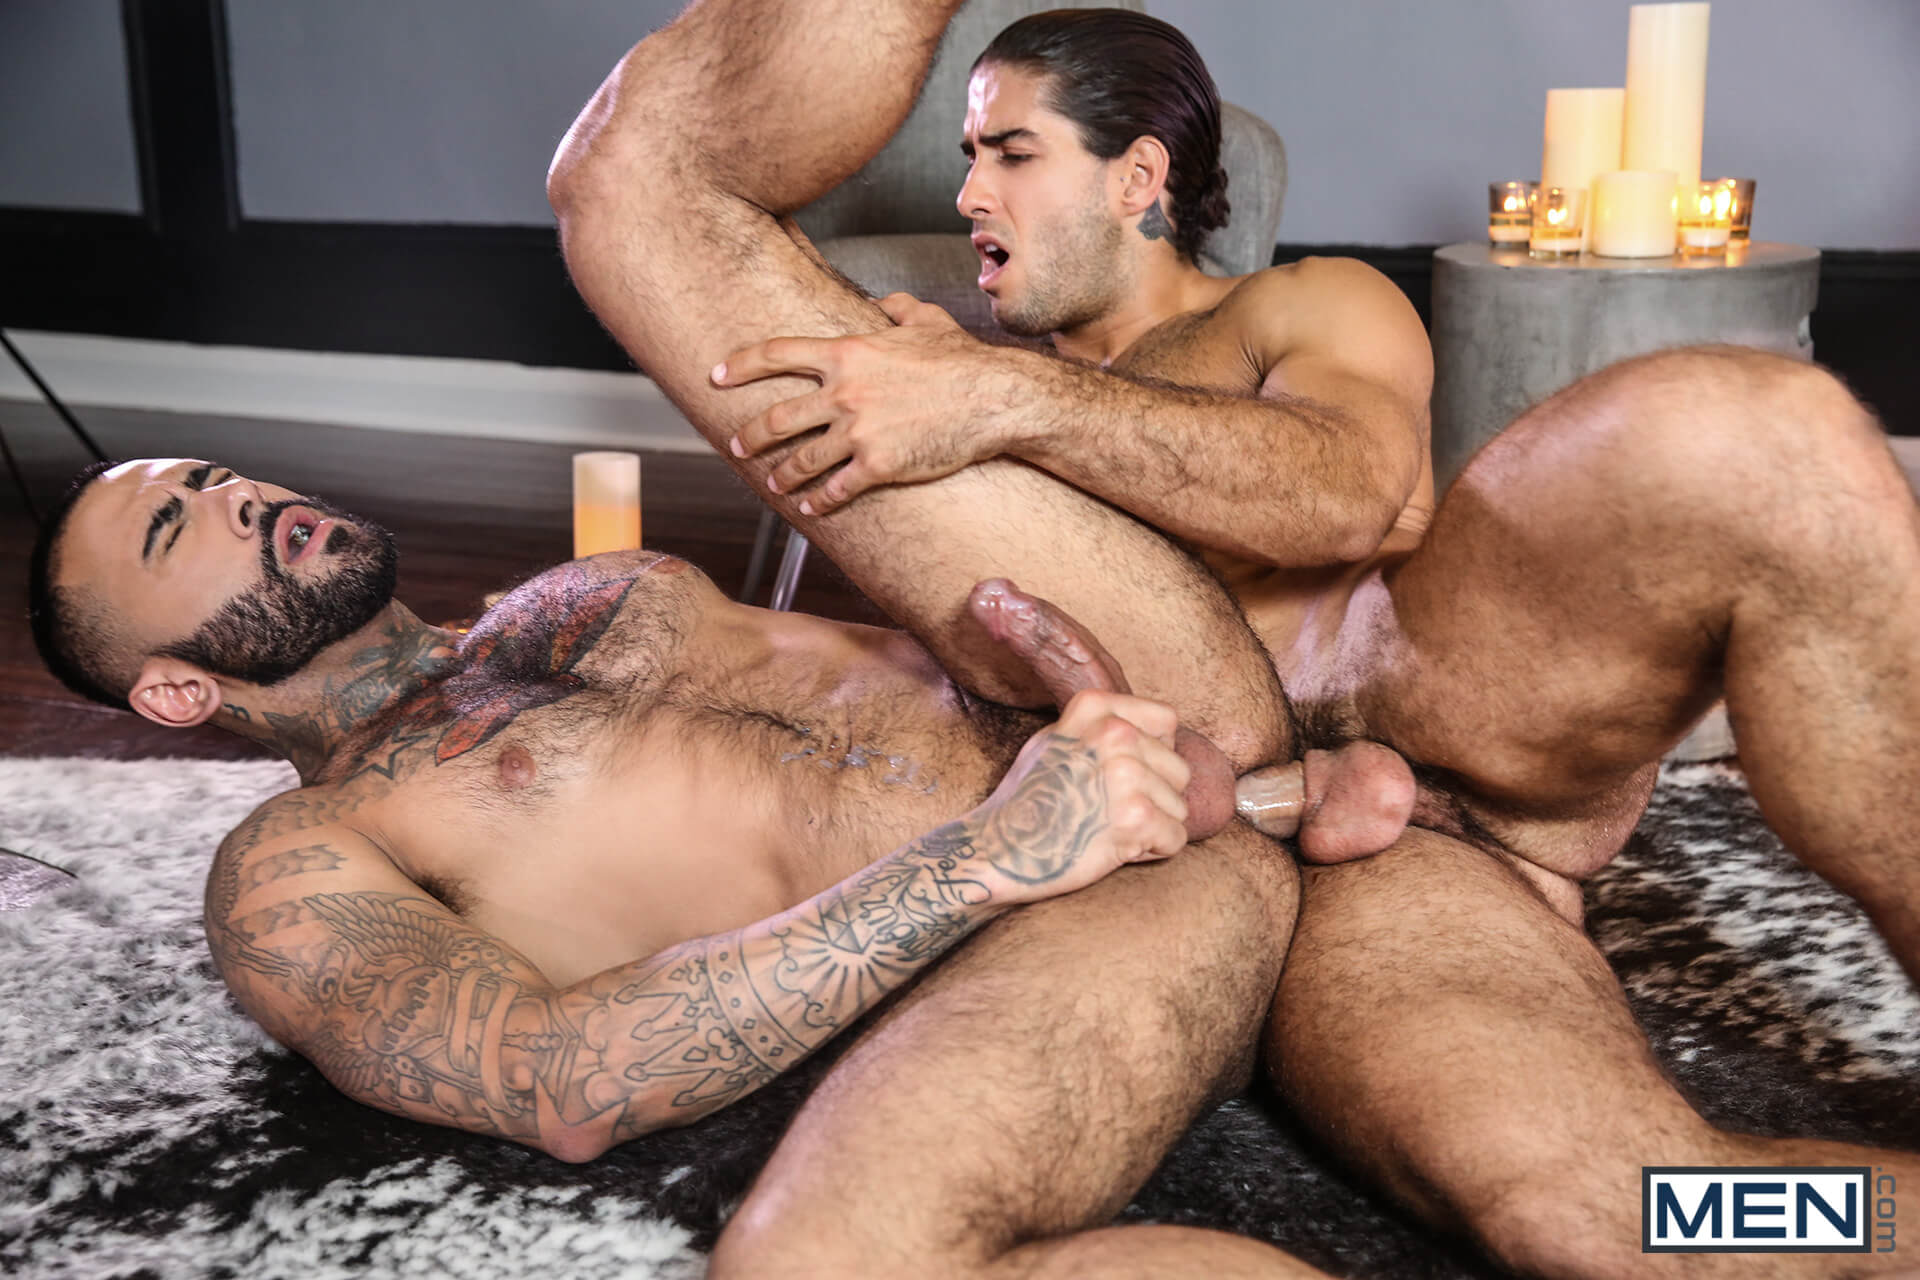 men gods of men te amo diego sans rikk york gay porn blog image 24